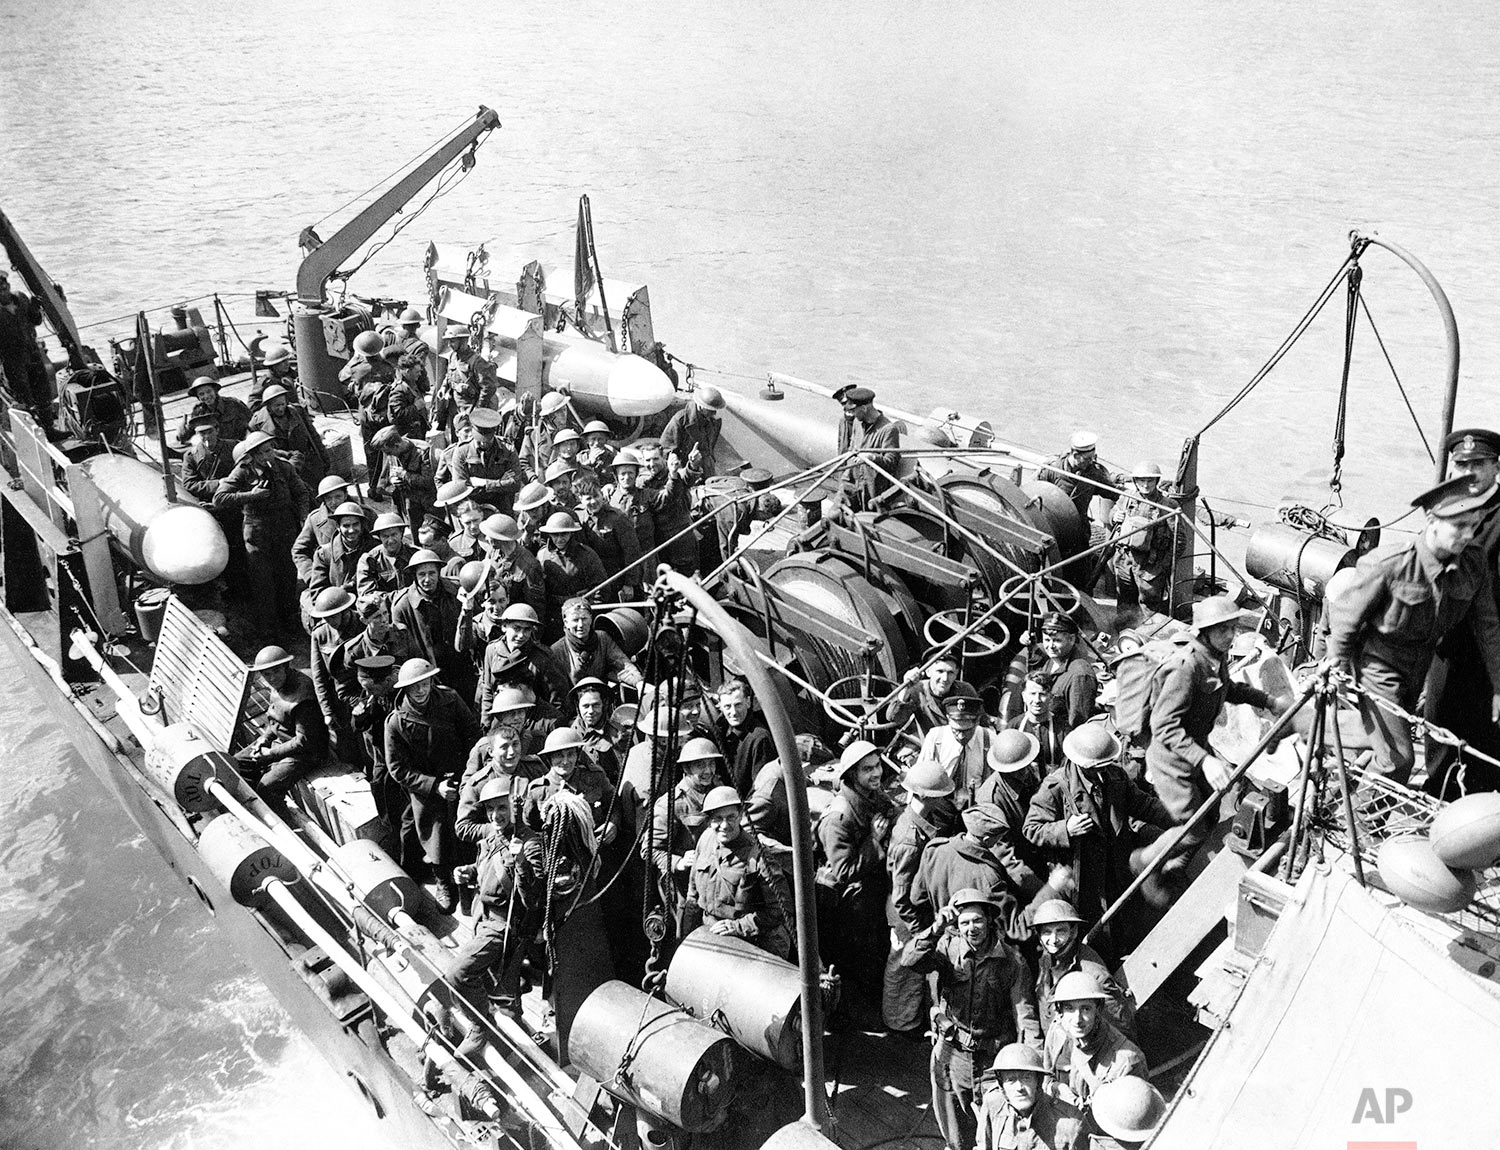 Troops of the British Expeditionary Force landing at an English port on May 31, 1940. (AP Photo)